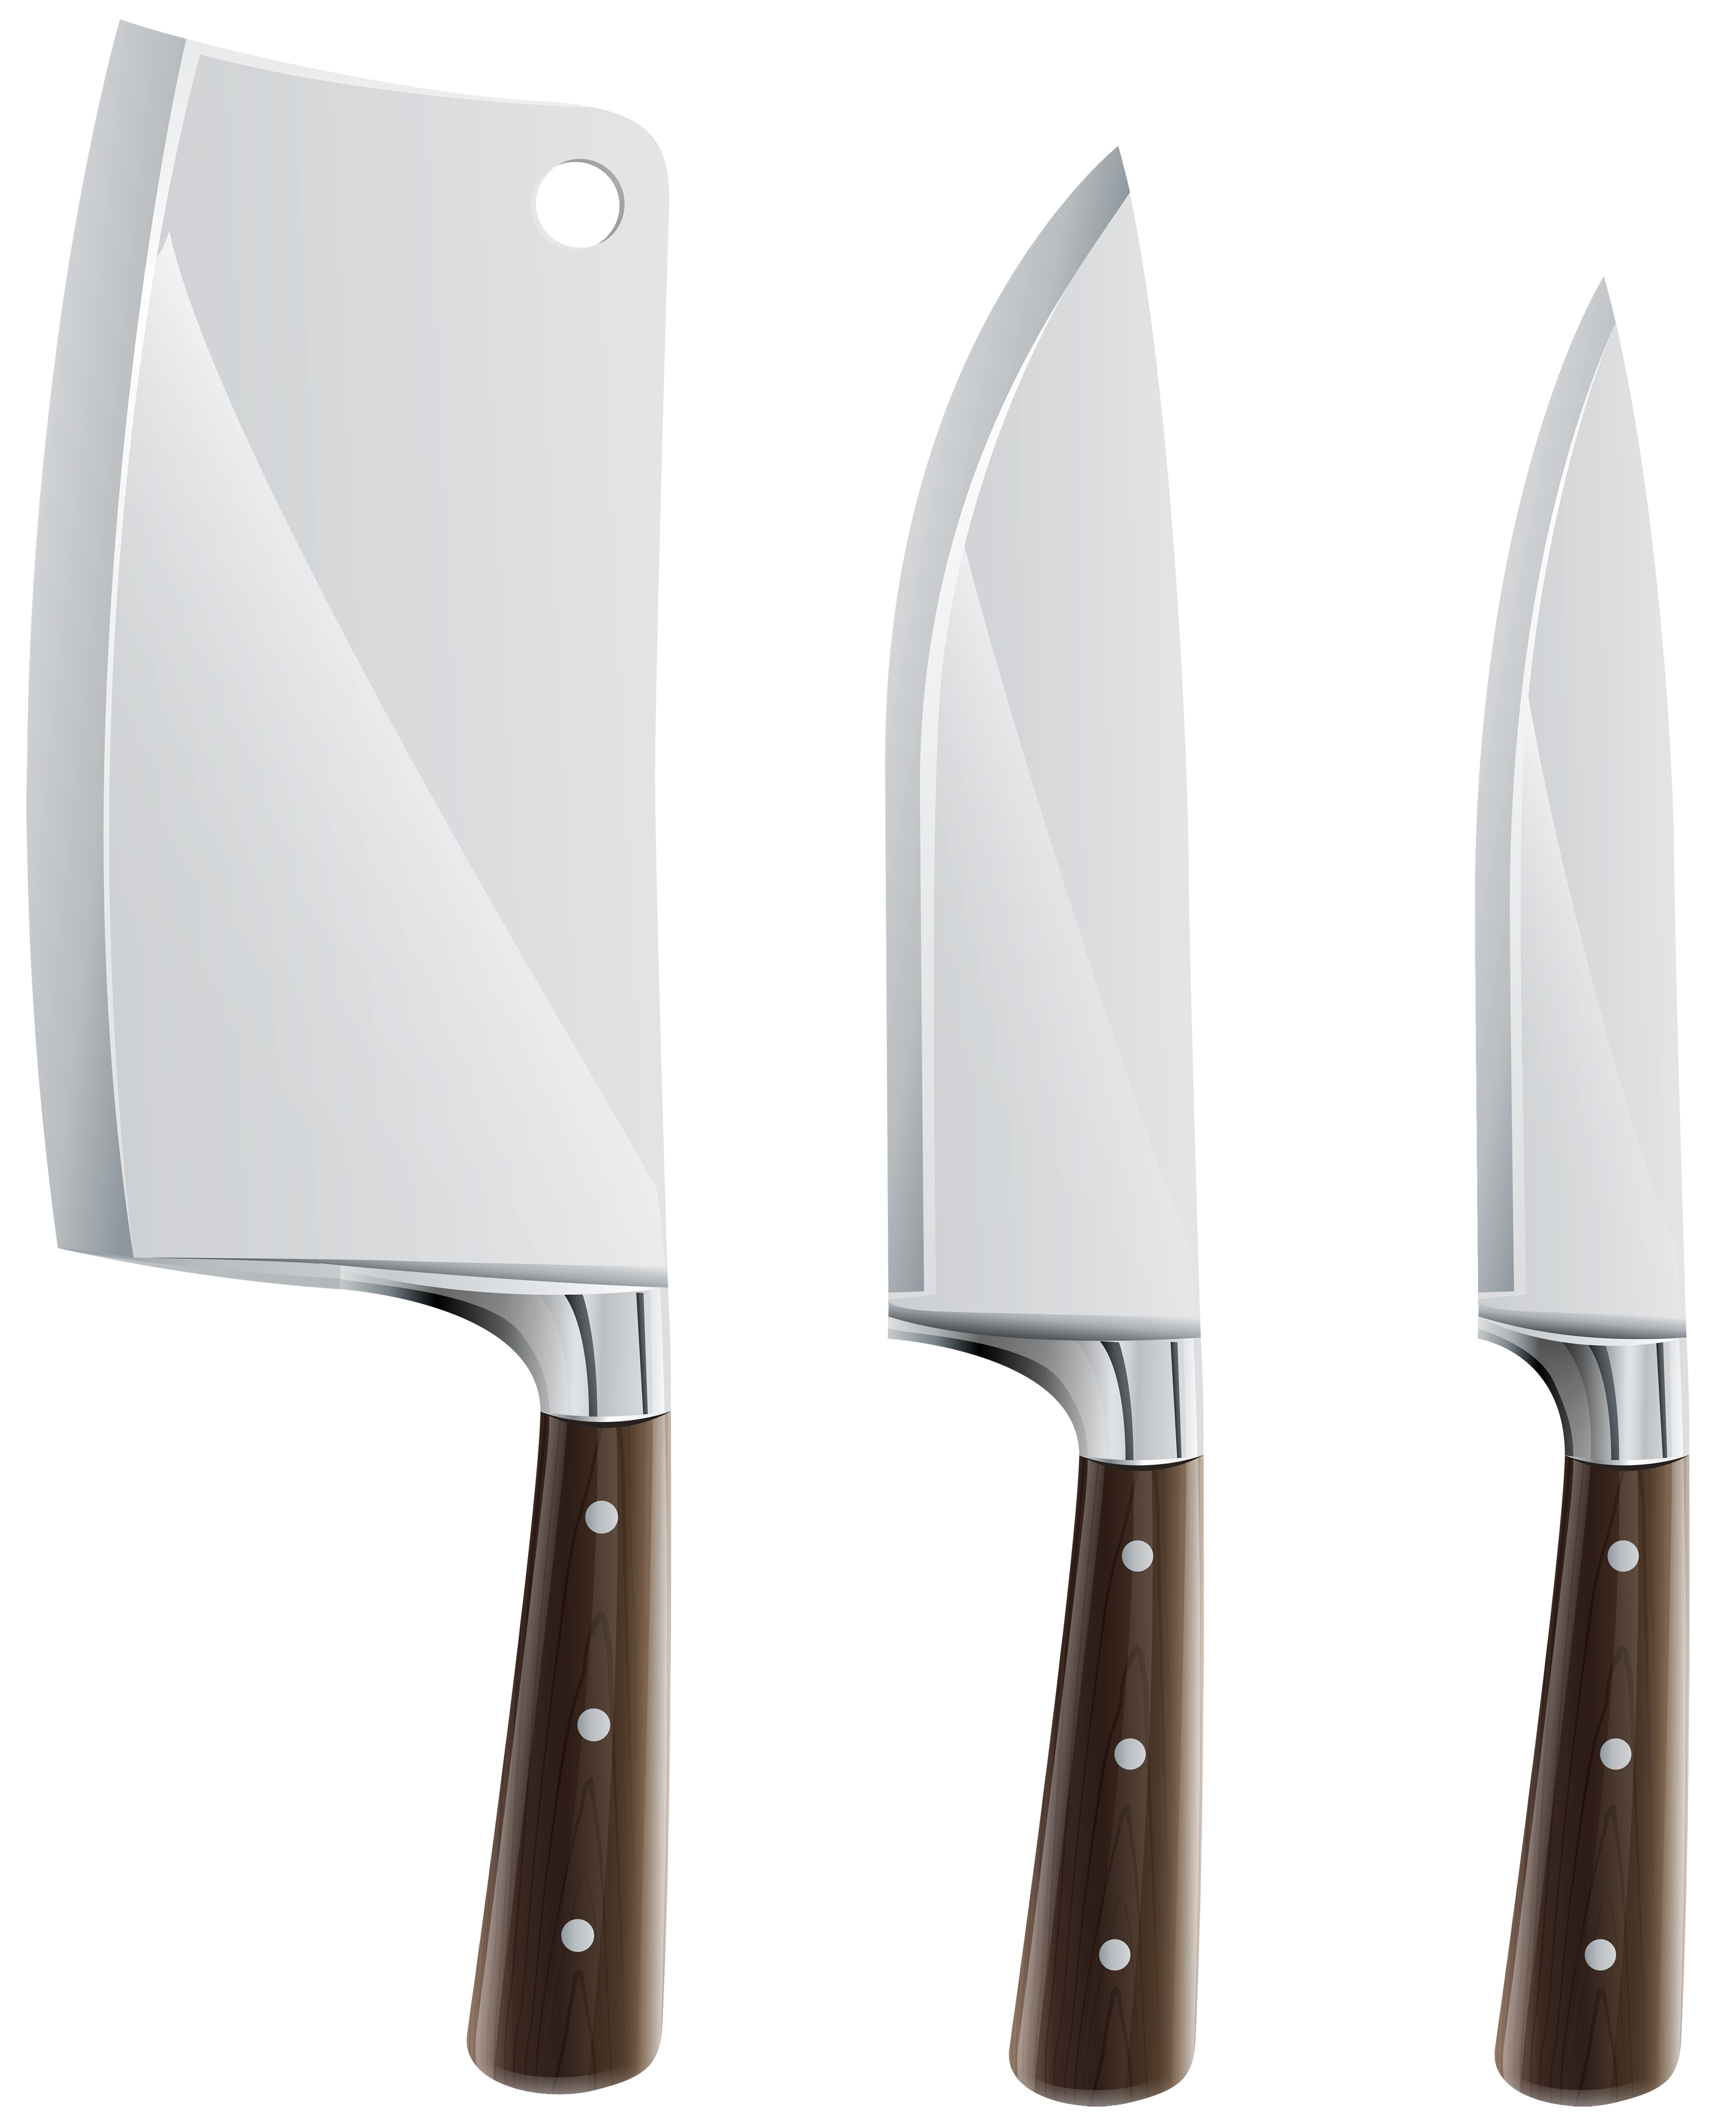 Kitchen Knife Set PNG Clipart In Categor-Kitchen Knife Set PNG Clipart in category Cookware PNG / Clipart -  Transparent PNG pictures and vector rasterized Clip art images.-12